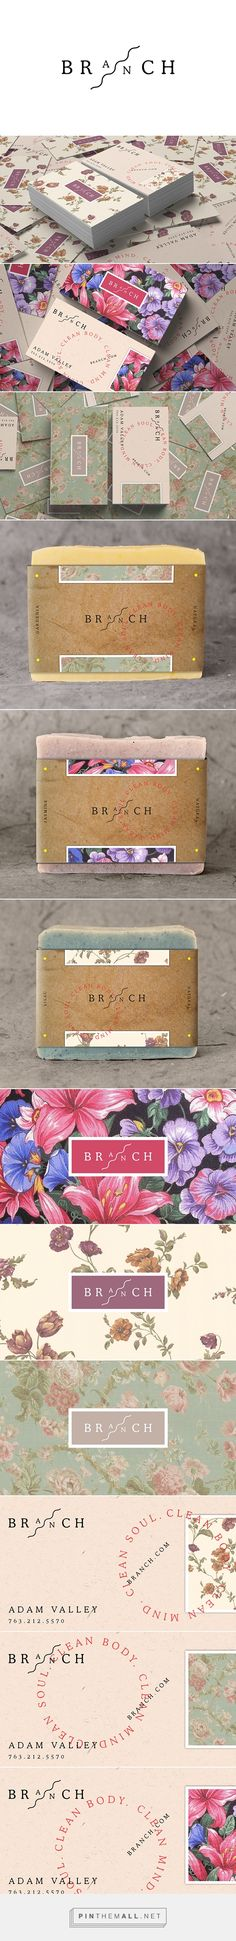 Branch Soap on Behance | Fivestar Branding – Design and Branding Agency &…